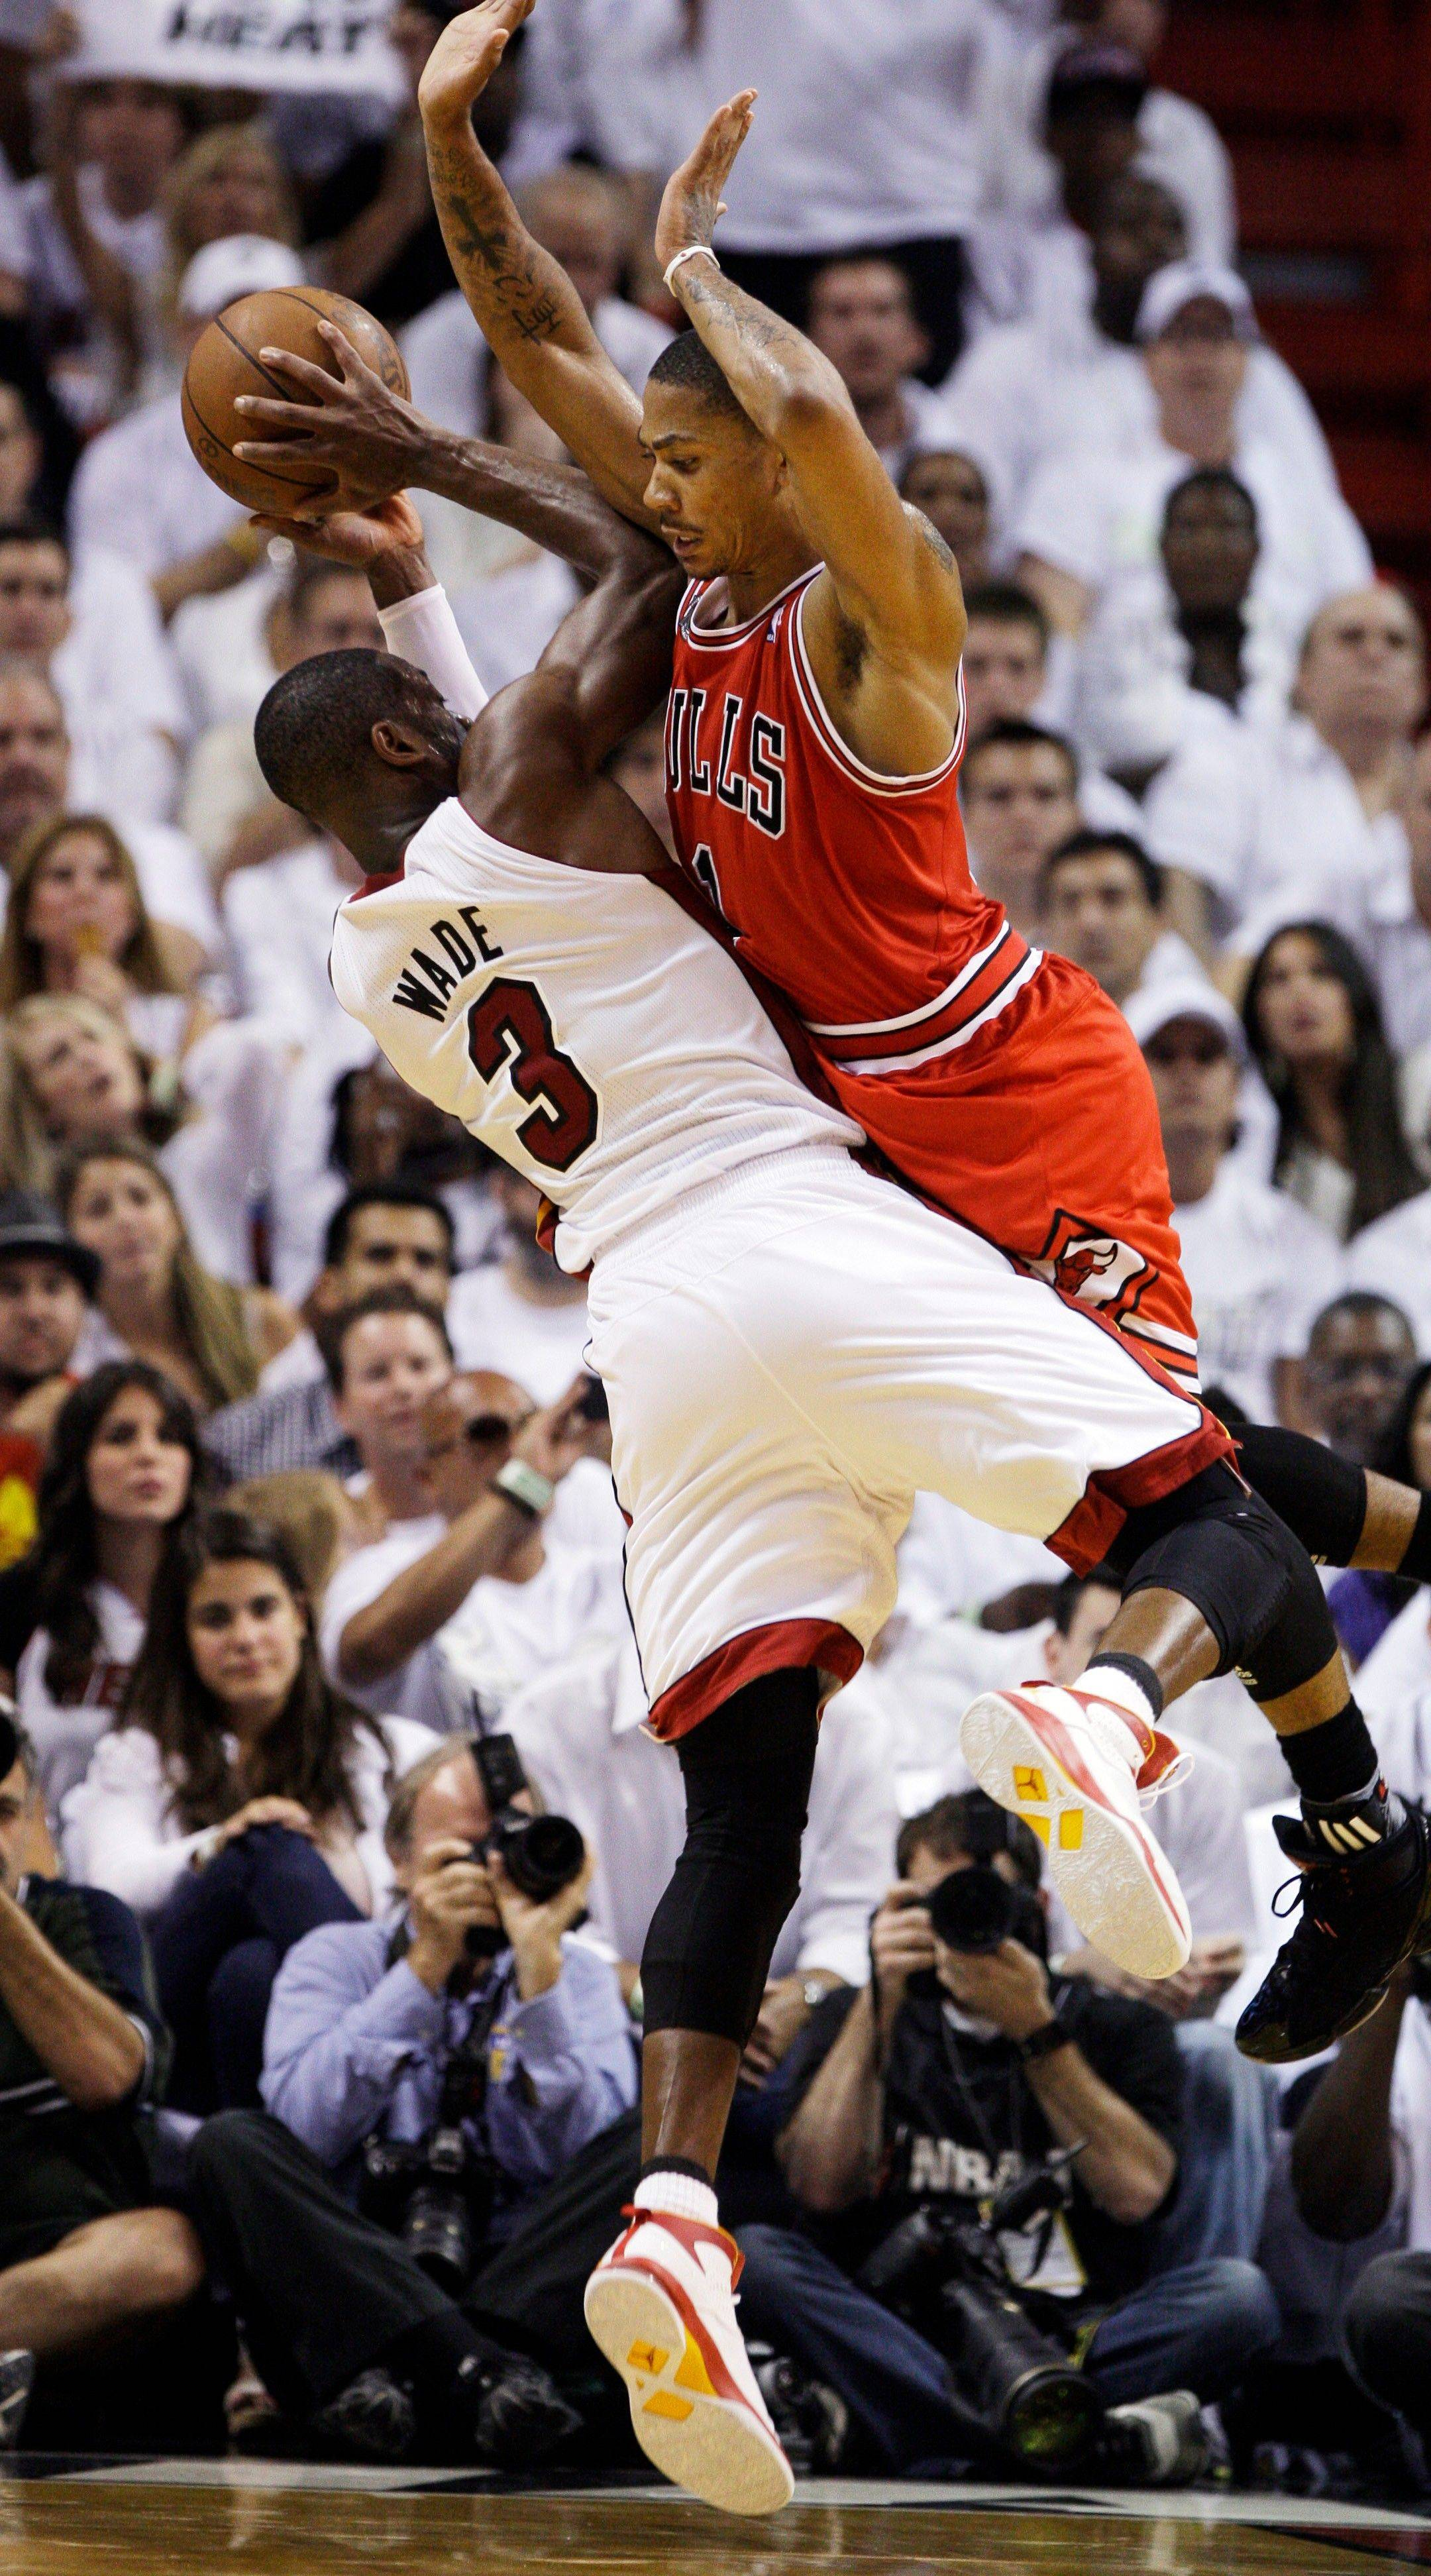 Chicago Bulls' Derrick Rose (1) collides with Miami Heat's Dwyane Wade (3) during the second half of Game 3 of the NBA Eastern Conference finals basketball series in Miami, Sunday, May 22, 2011. The Heat defeated the Bulls 96-85.